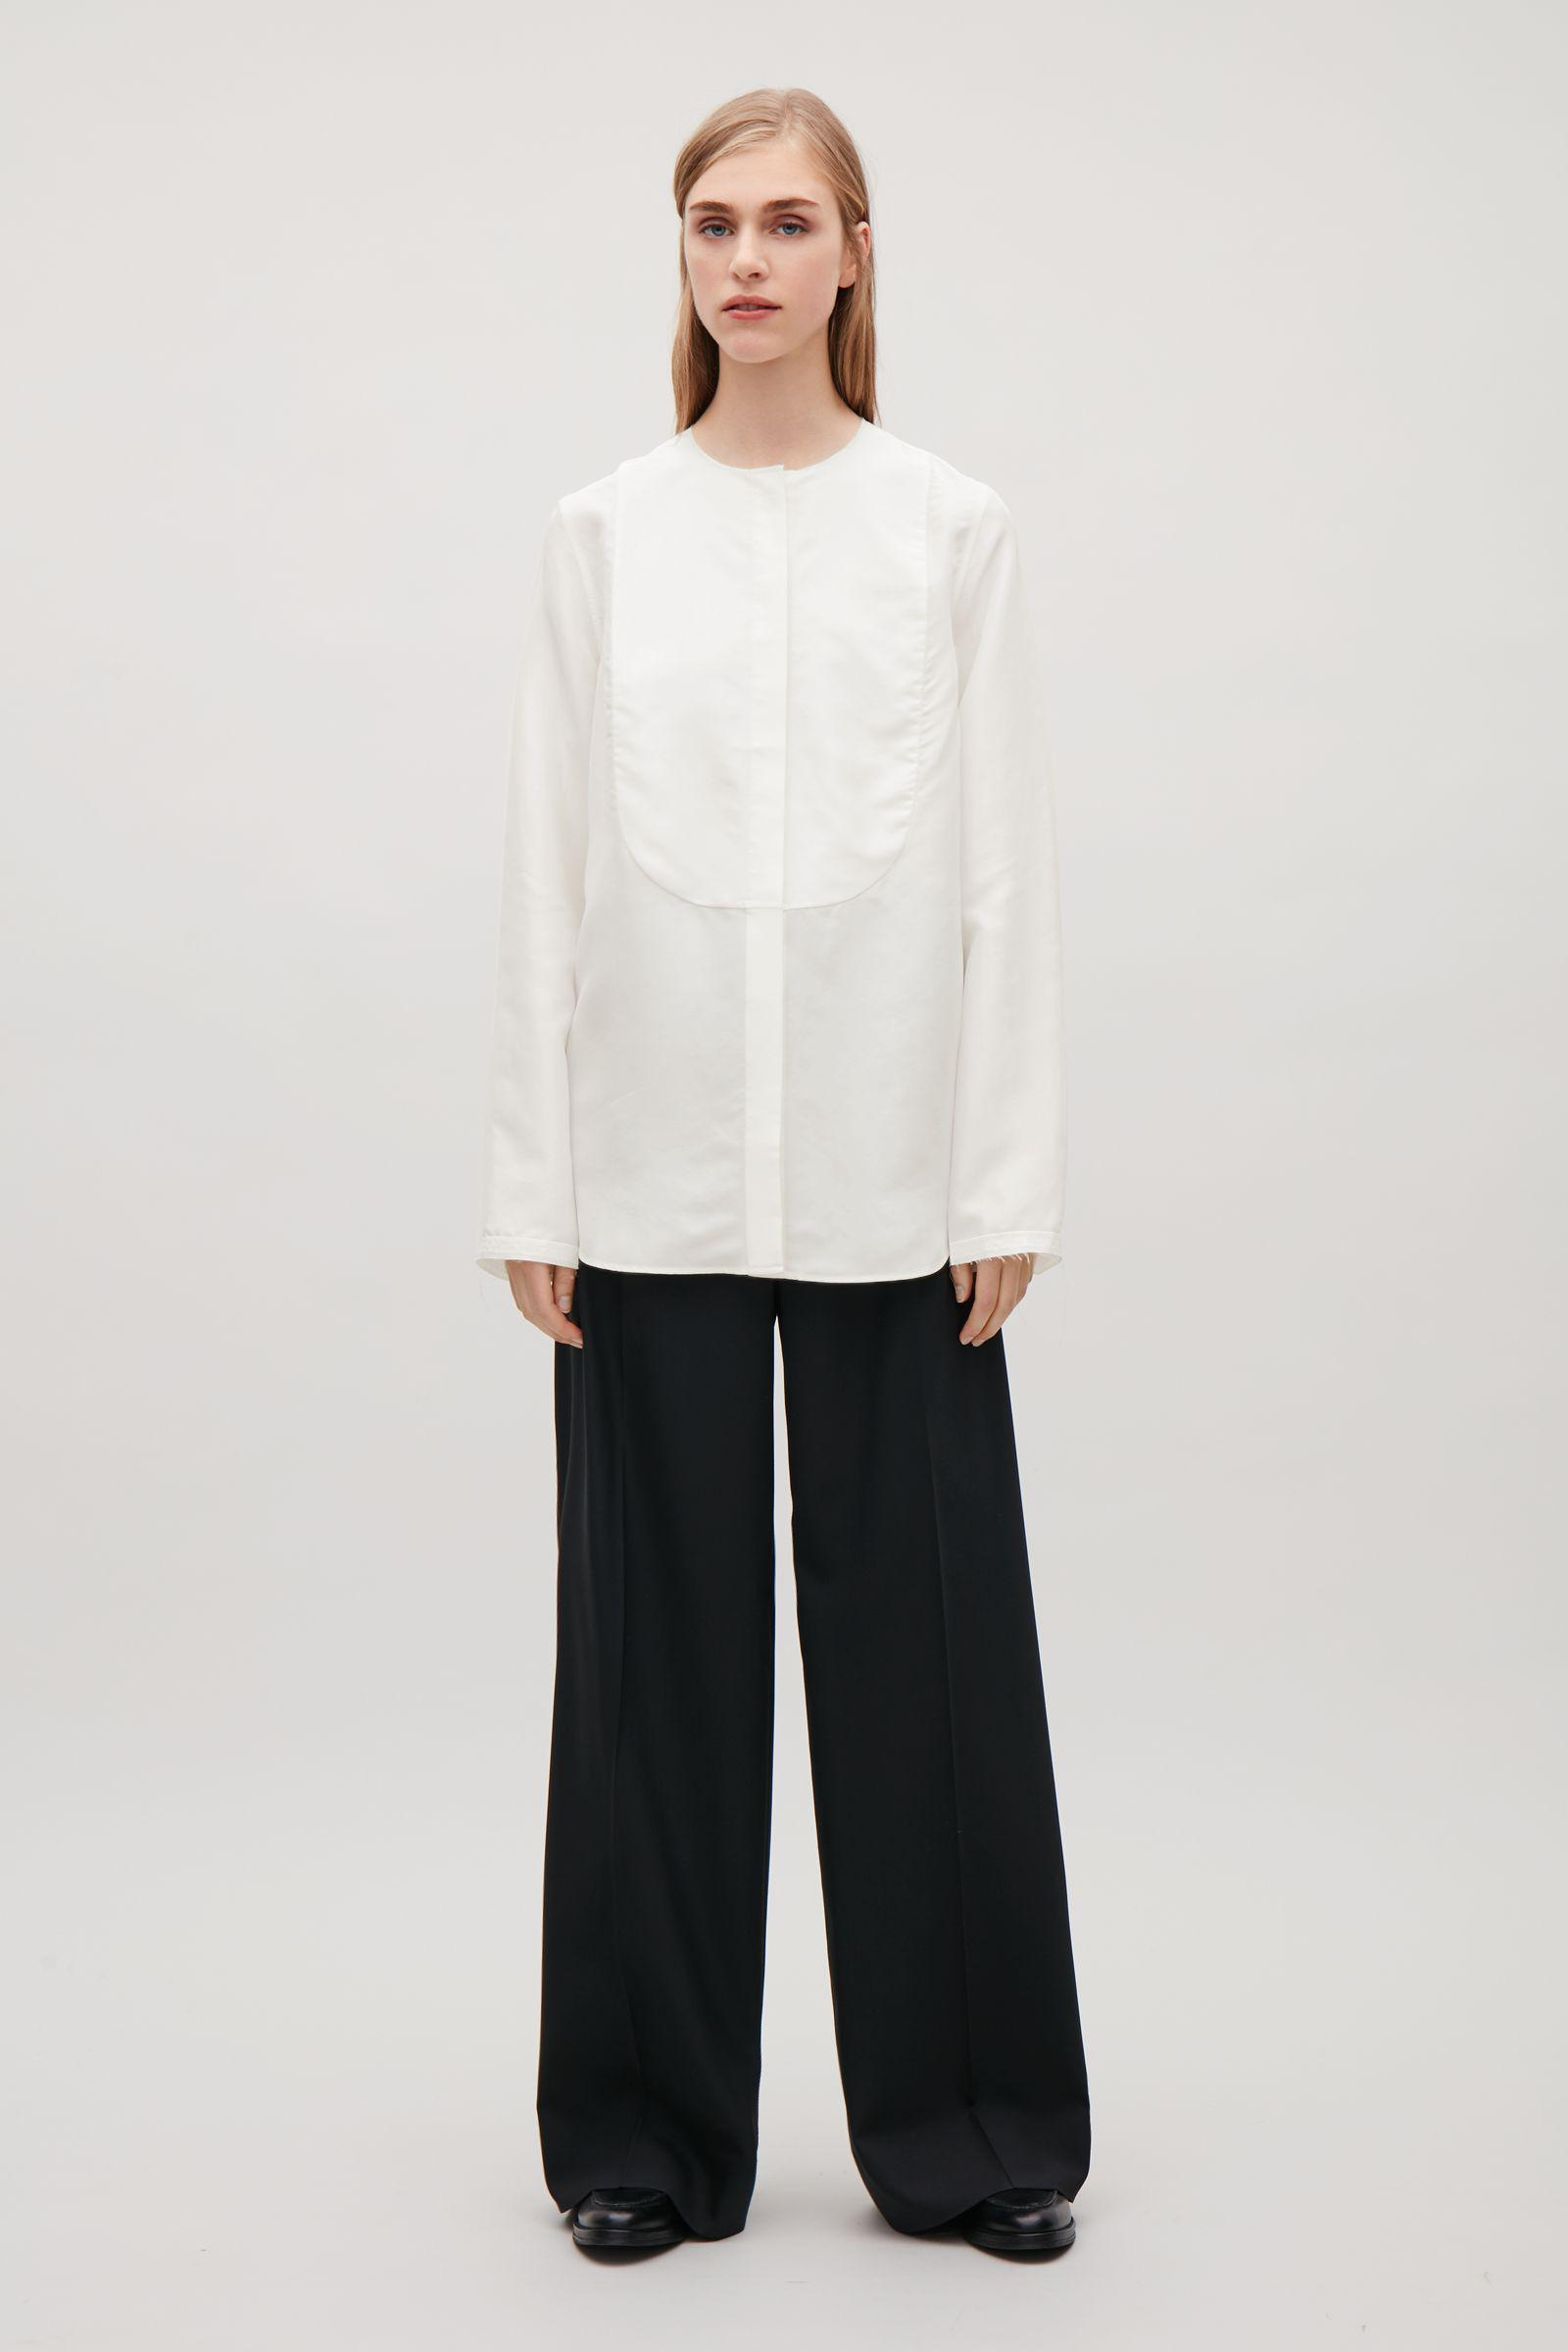 7ef06c54fe9c COS Silk Shirt With Bib Front in White - Lyst